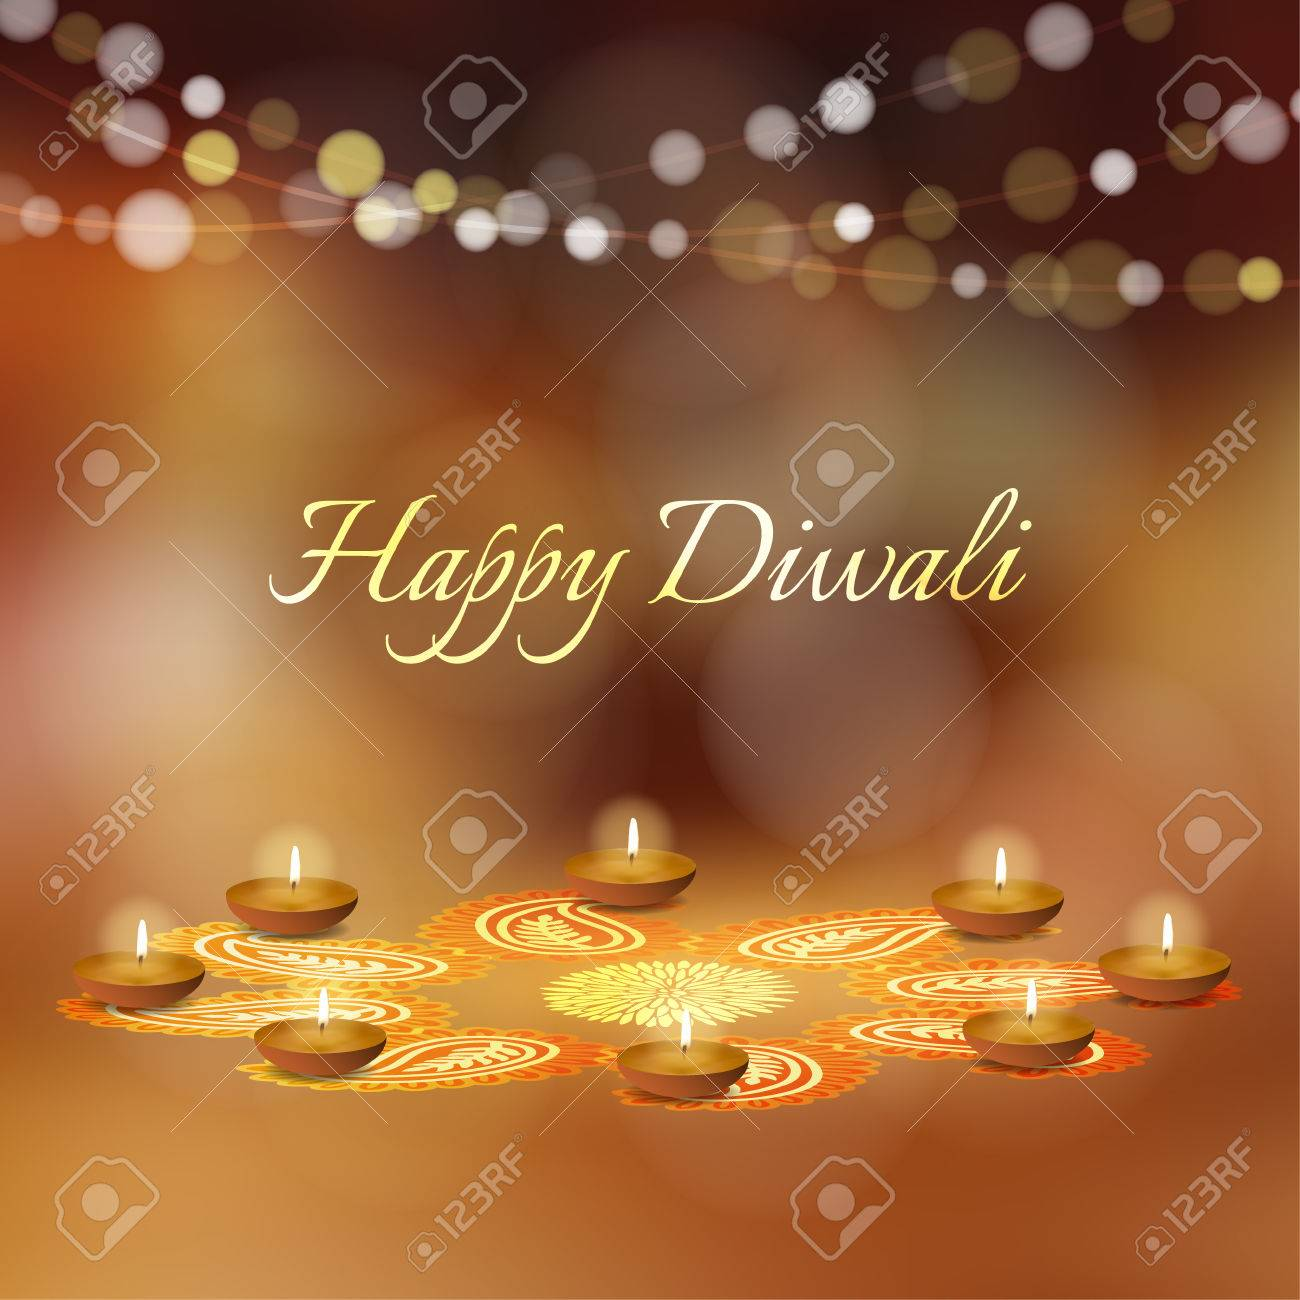 Happy diwali greeting card invitation indian festival of lights happy diwali greeting card invitation indian festival of lights diya oil lit lamps m4hsunfo